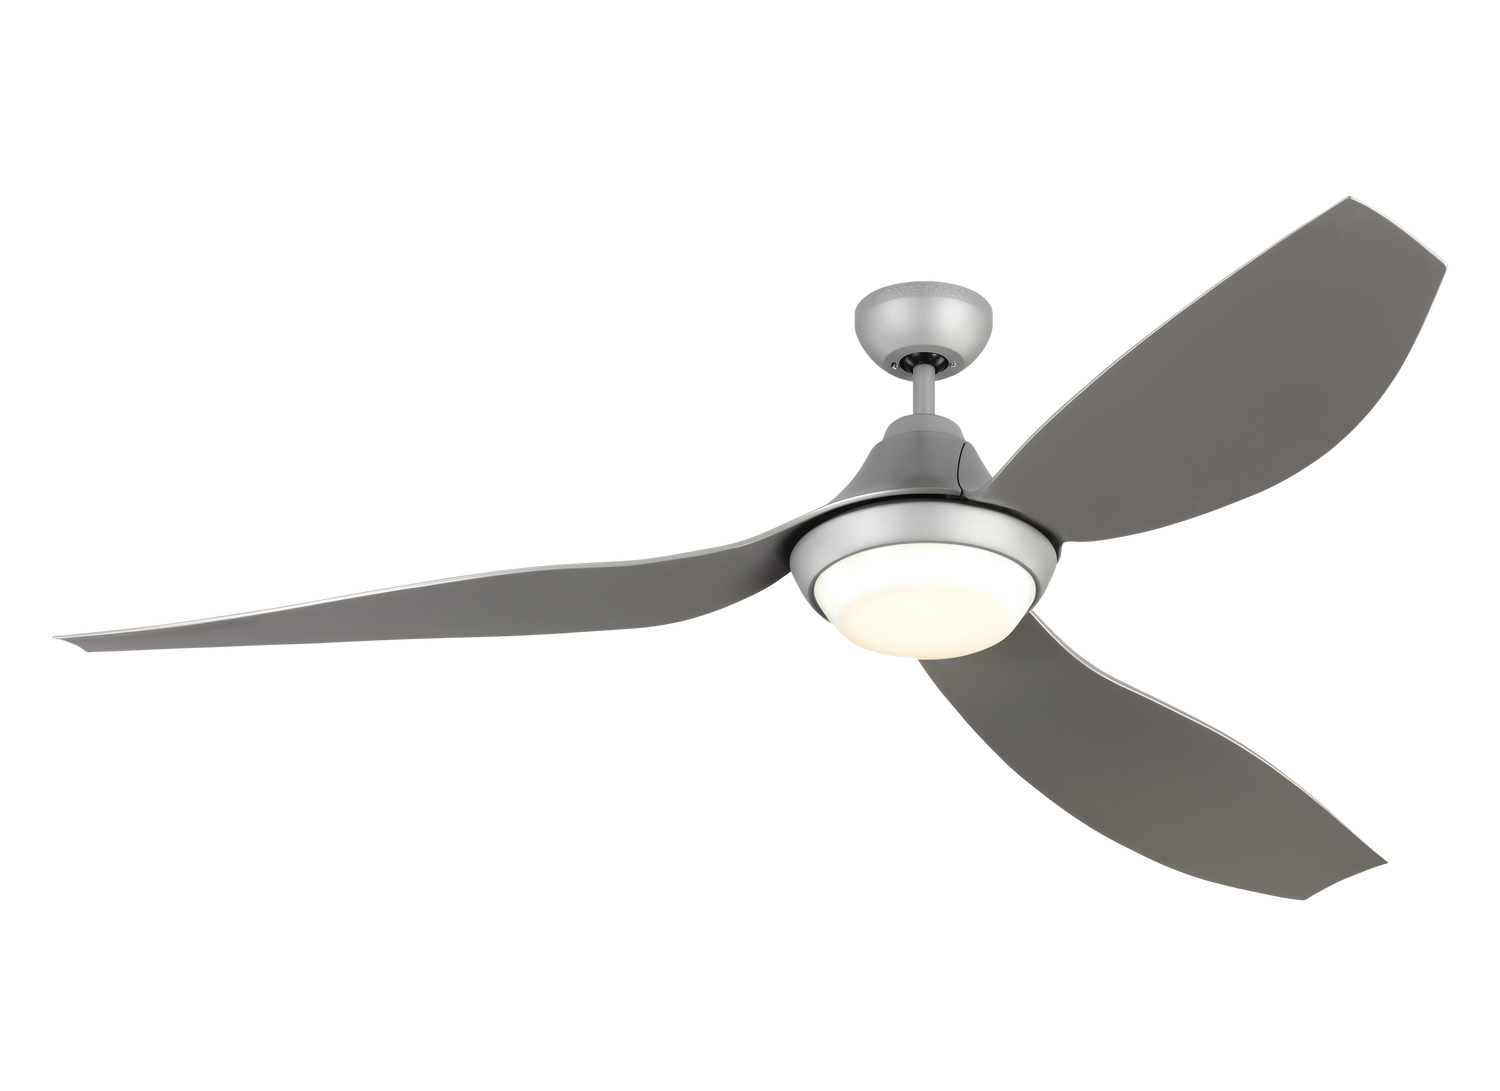 64 inch Ceiling Fan from the Avvo Max collection by Monte Carlo 3AVMR64GRYD